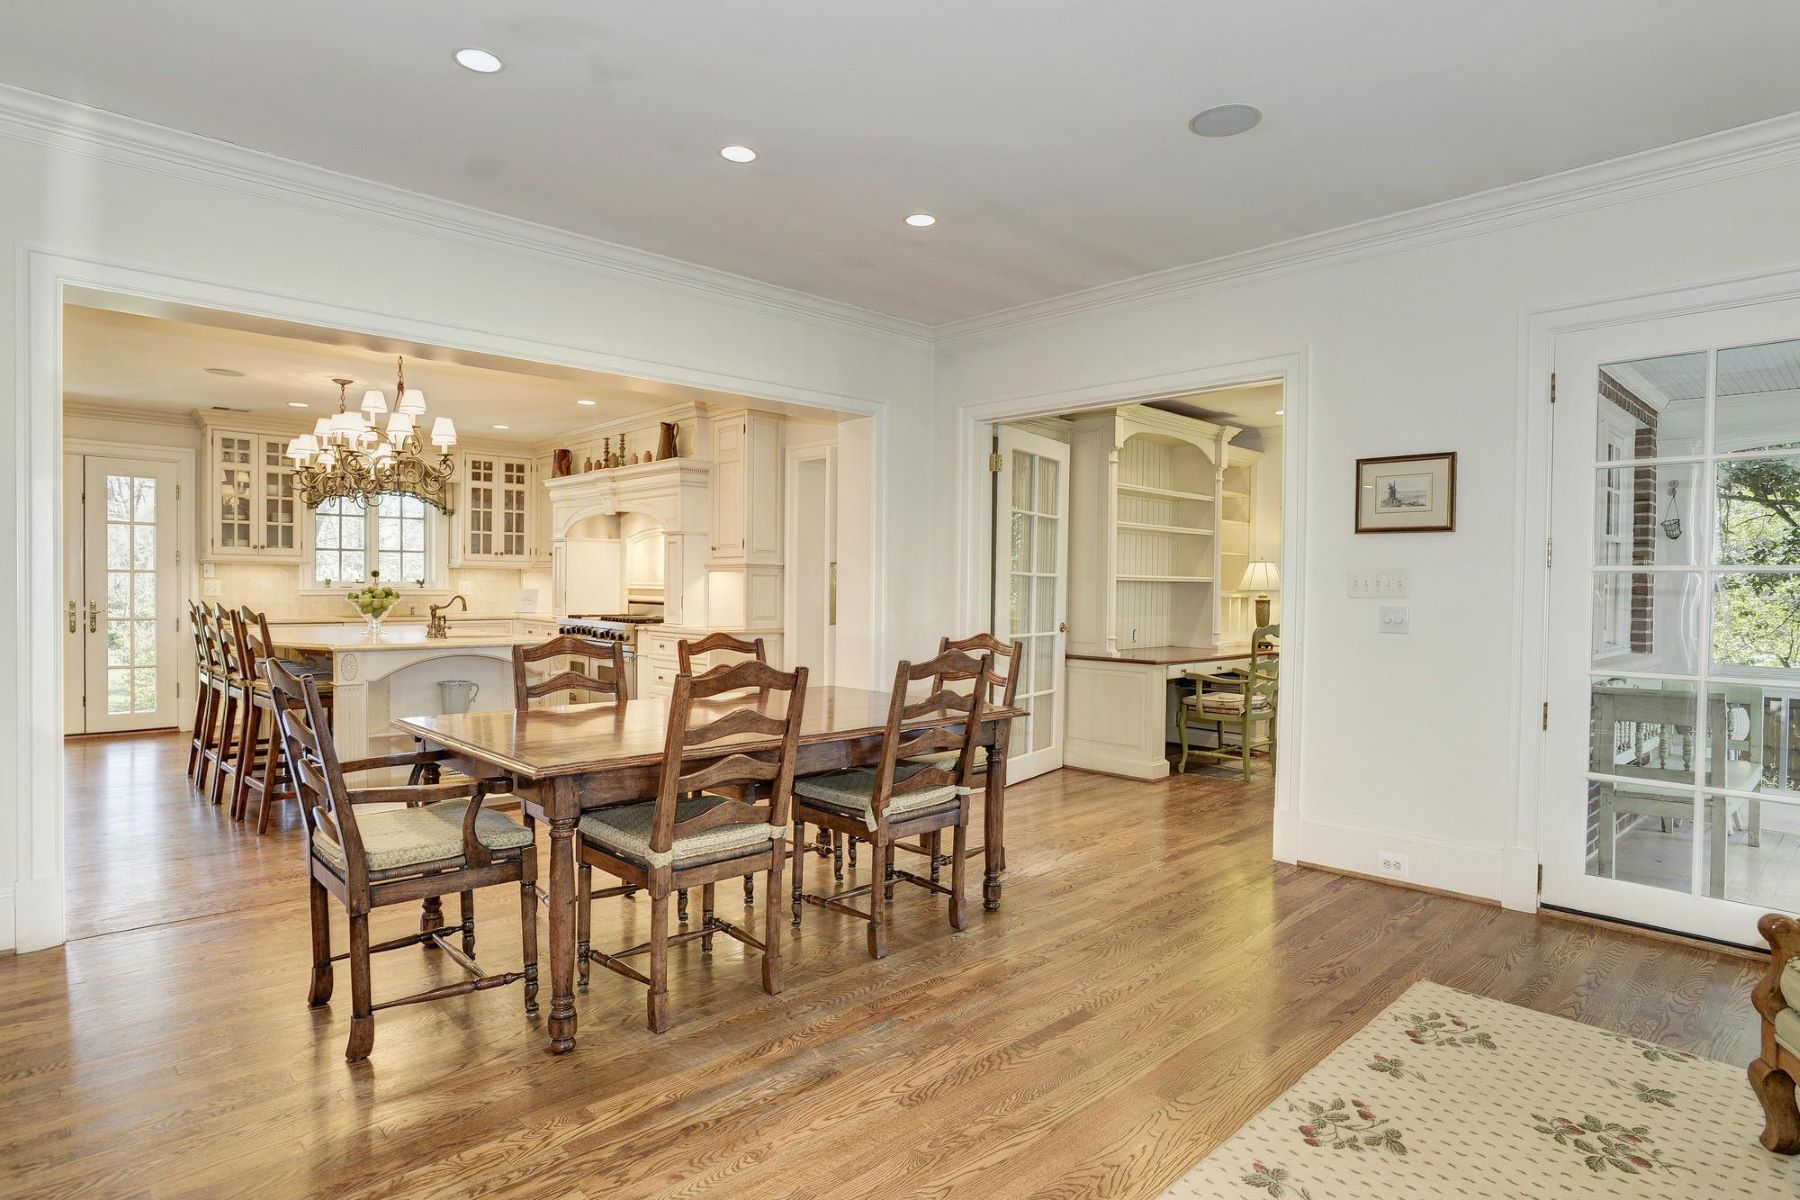 Additional photo for property listing at 319 Mansion Drive, Alexandria 319 Mansion Dr Alexandria, Virginia 22302 United States